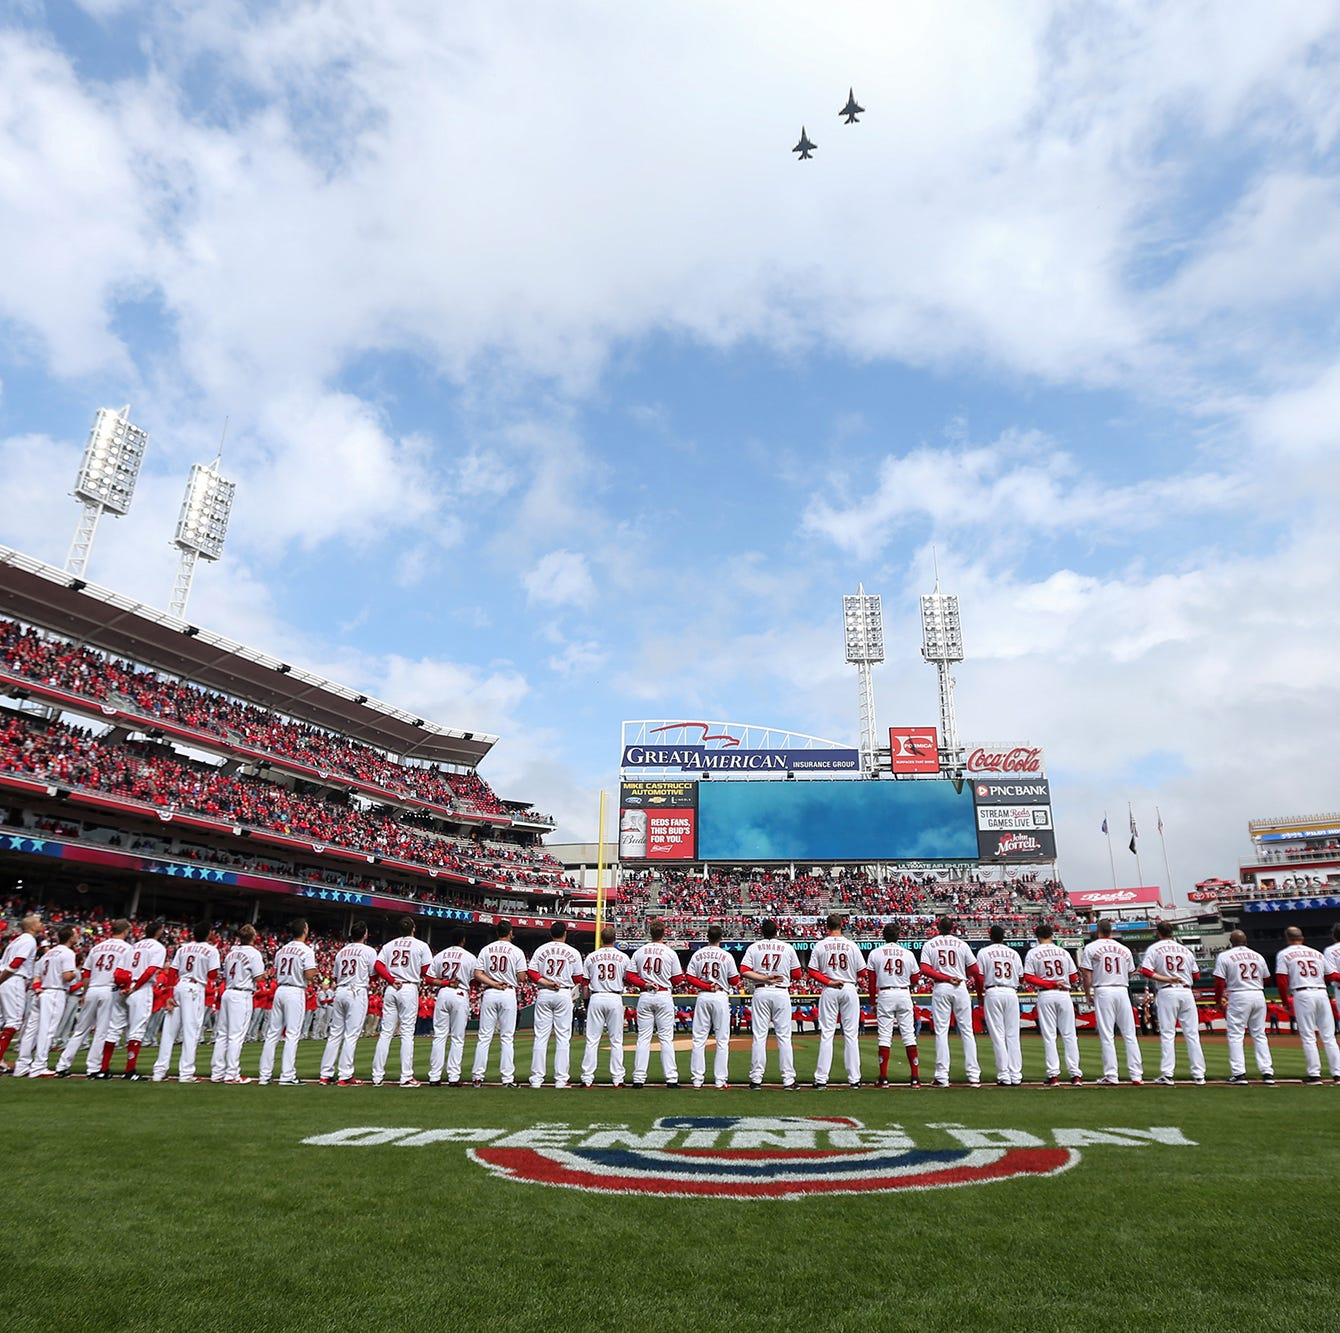 Cincinnati Reds announce Opening Day lineup for the 150th season of pro baseball